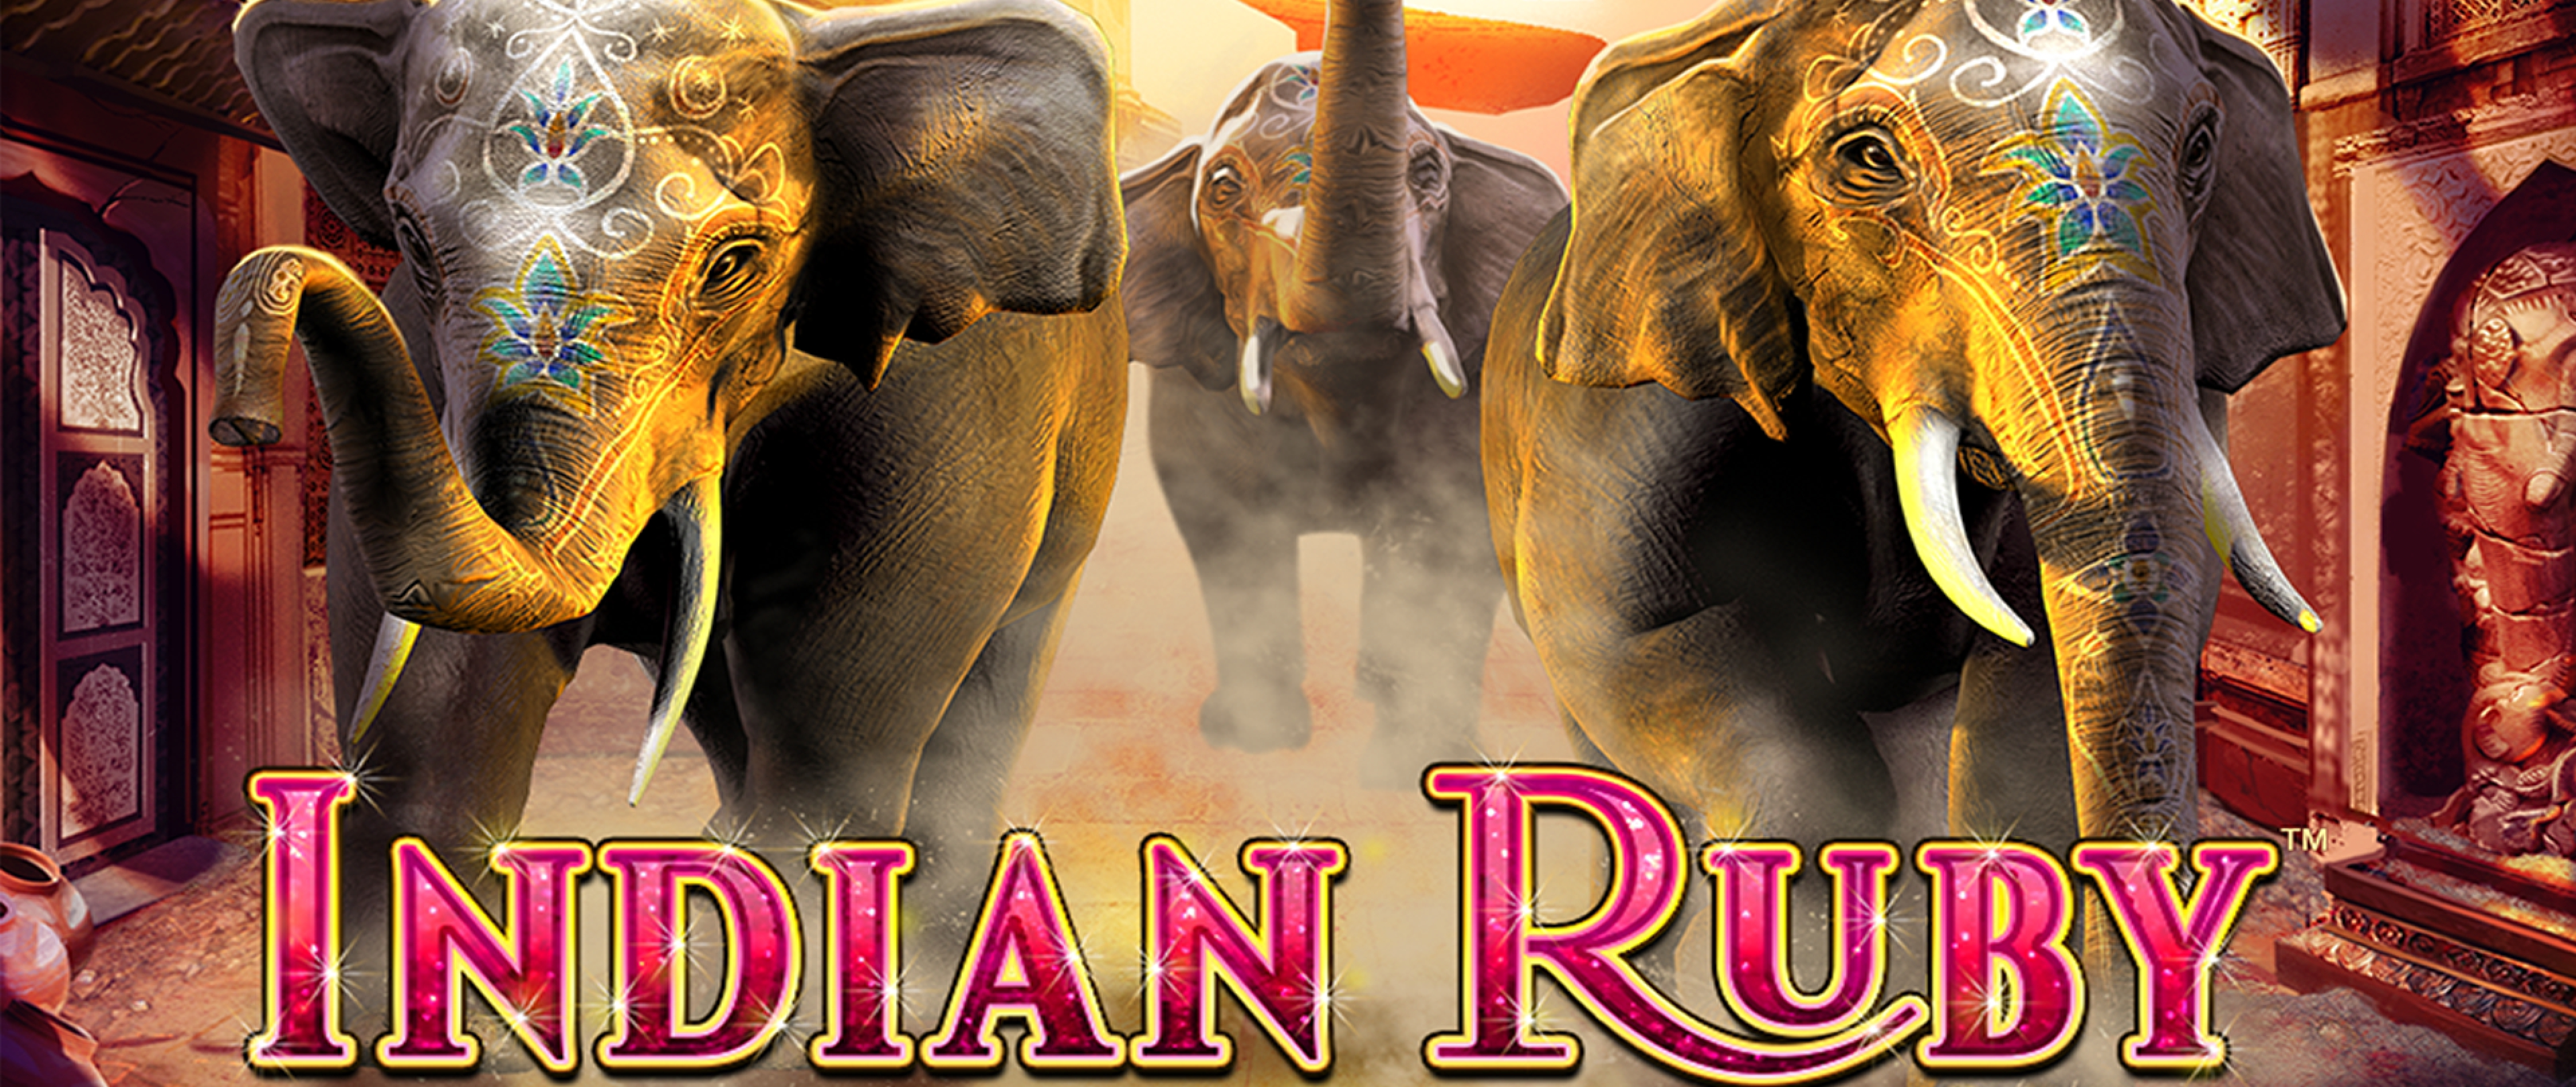 The Indian Ruby Online Slot Demo Game by Merkur Gaming